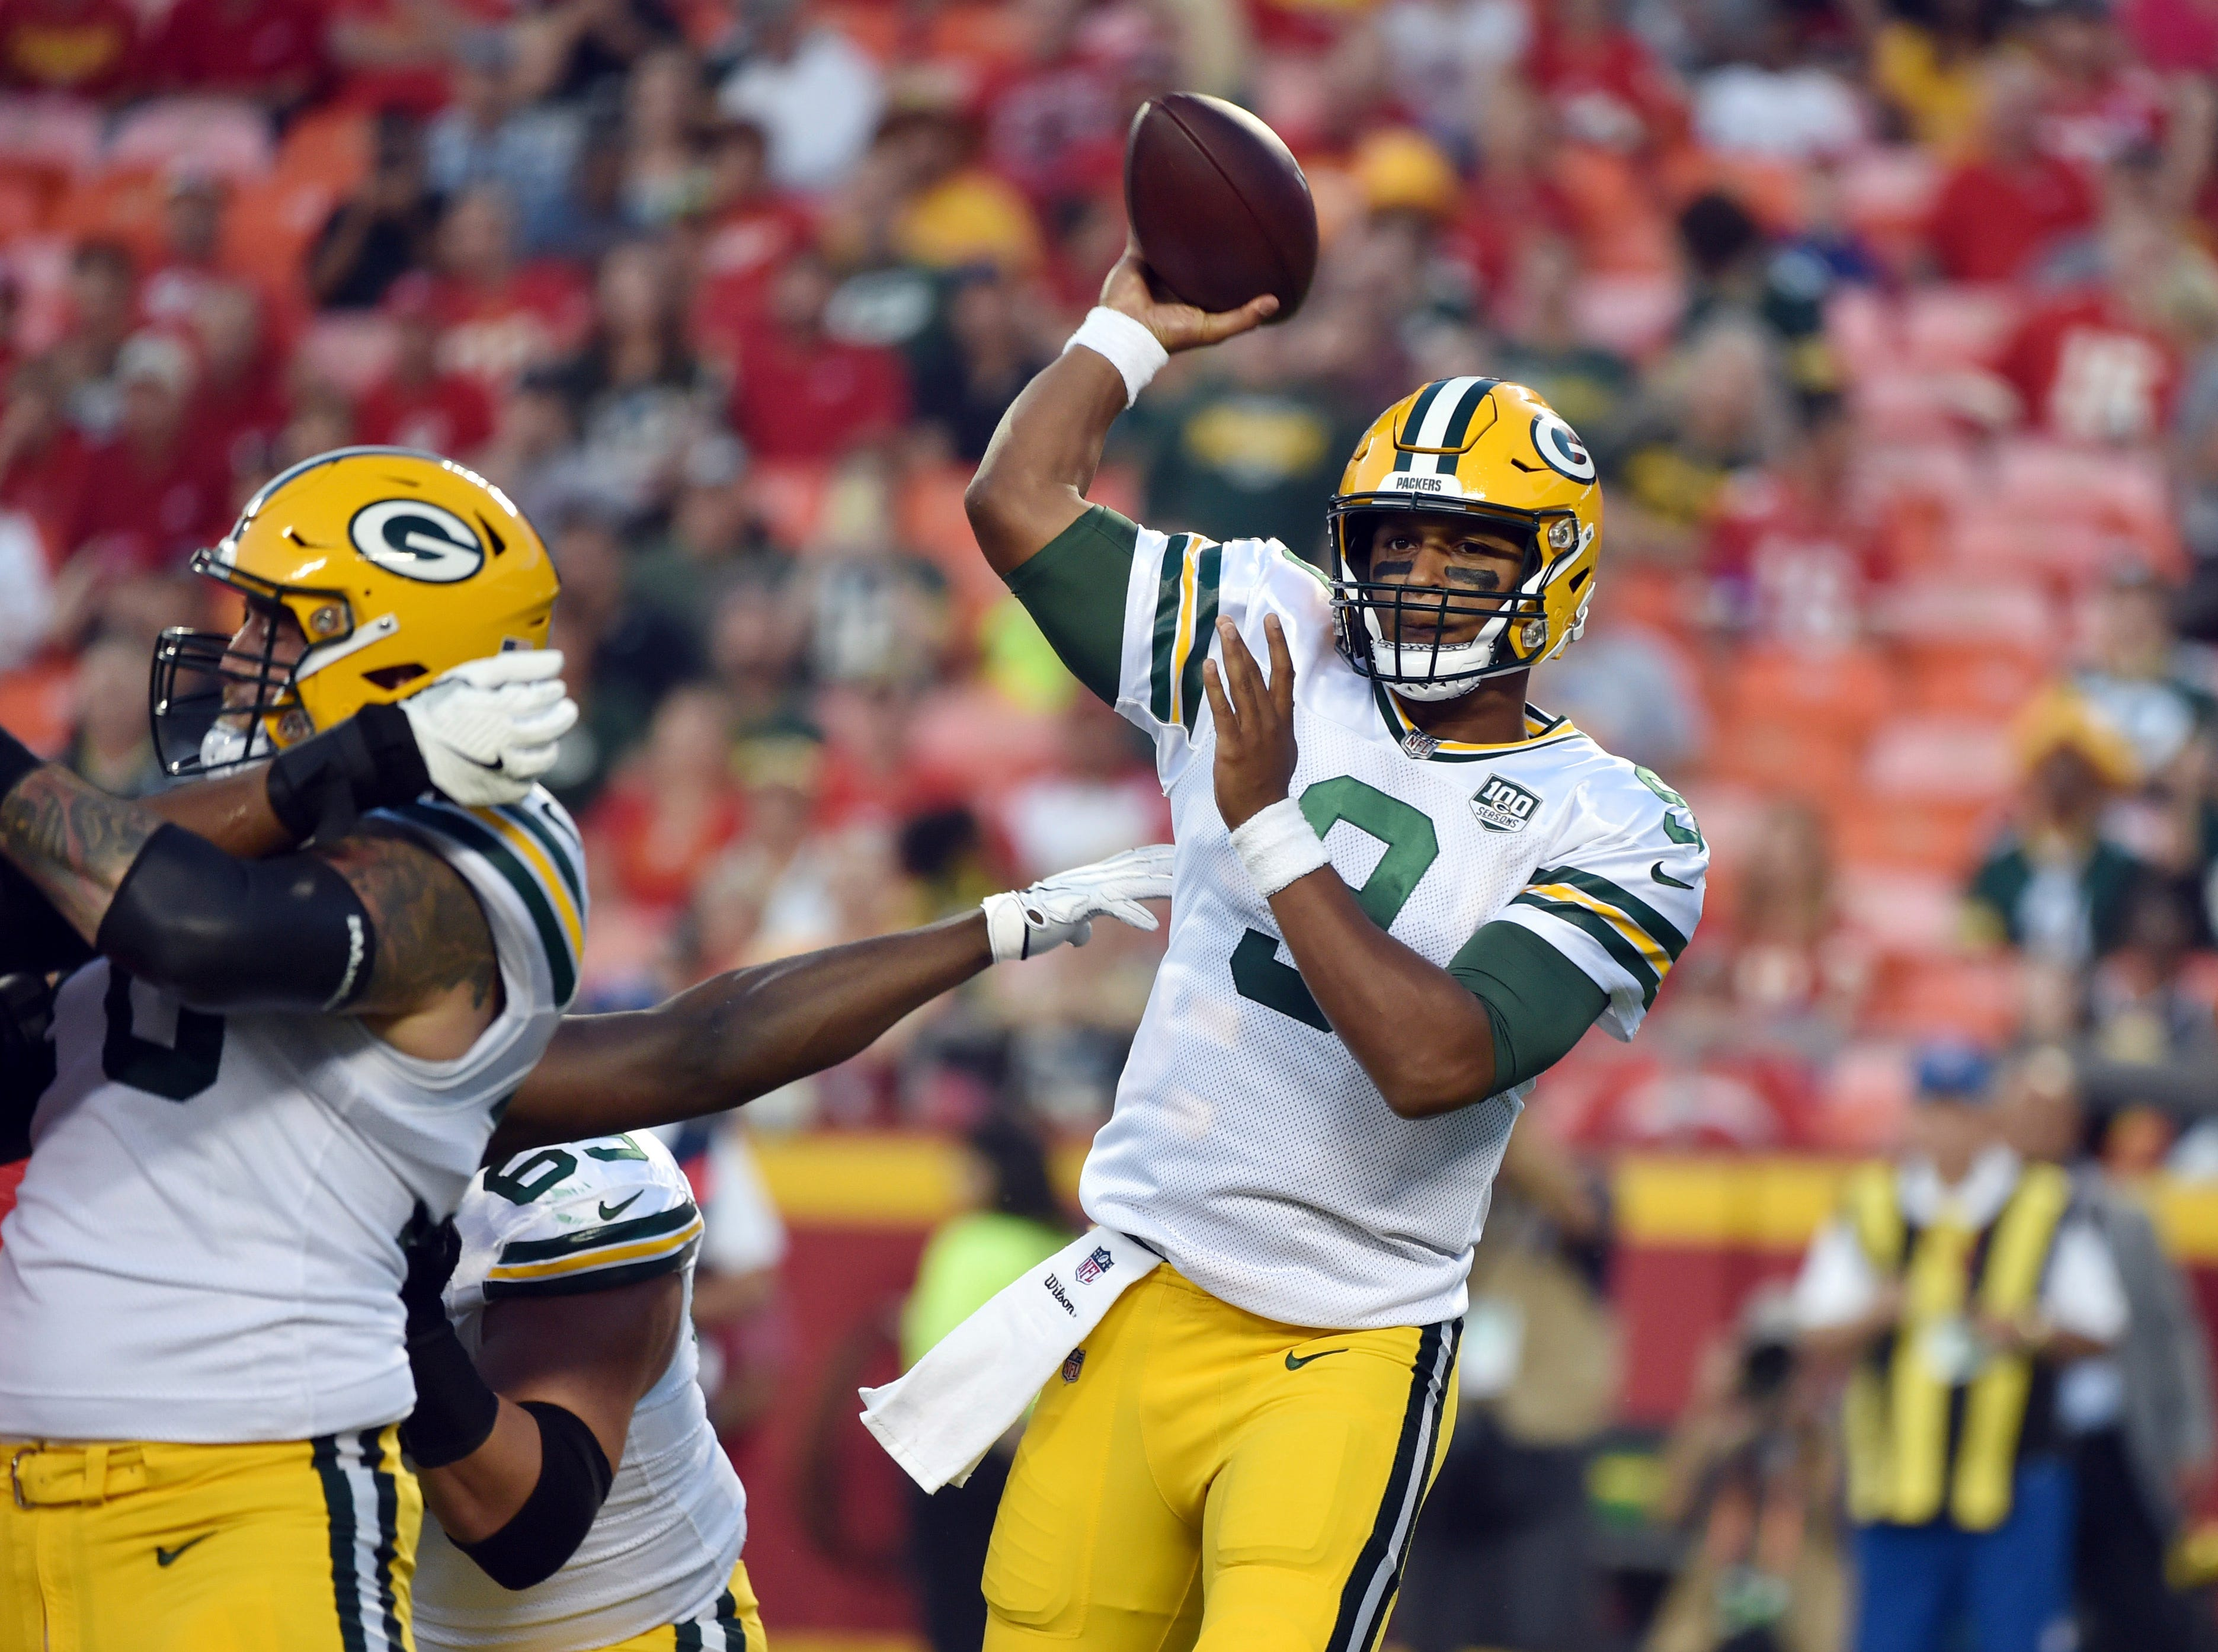 Green Bay Packers quarterback DeShone Kizer (9) throws during the first half of an NFL preseason football game against the Kansas City Chiefs in Kansas City, Mo., Thursday, Aug. 30, 2018.